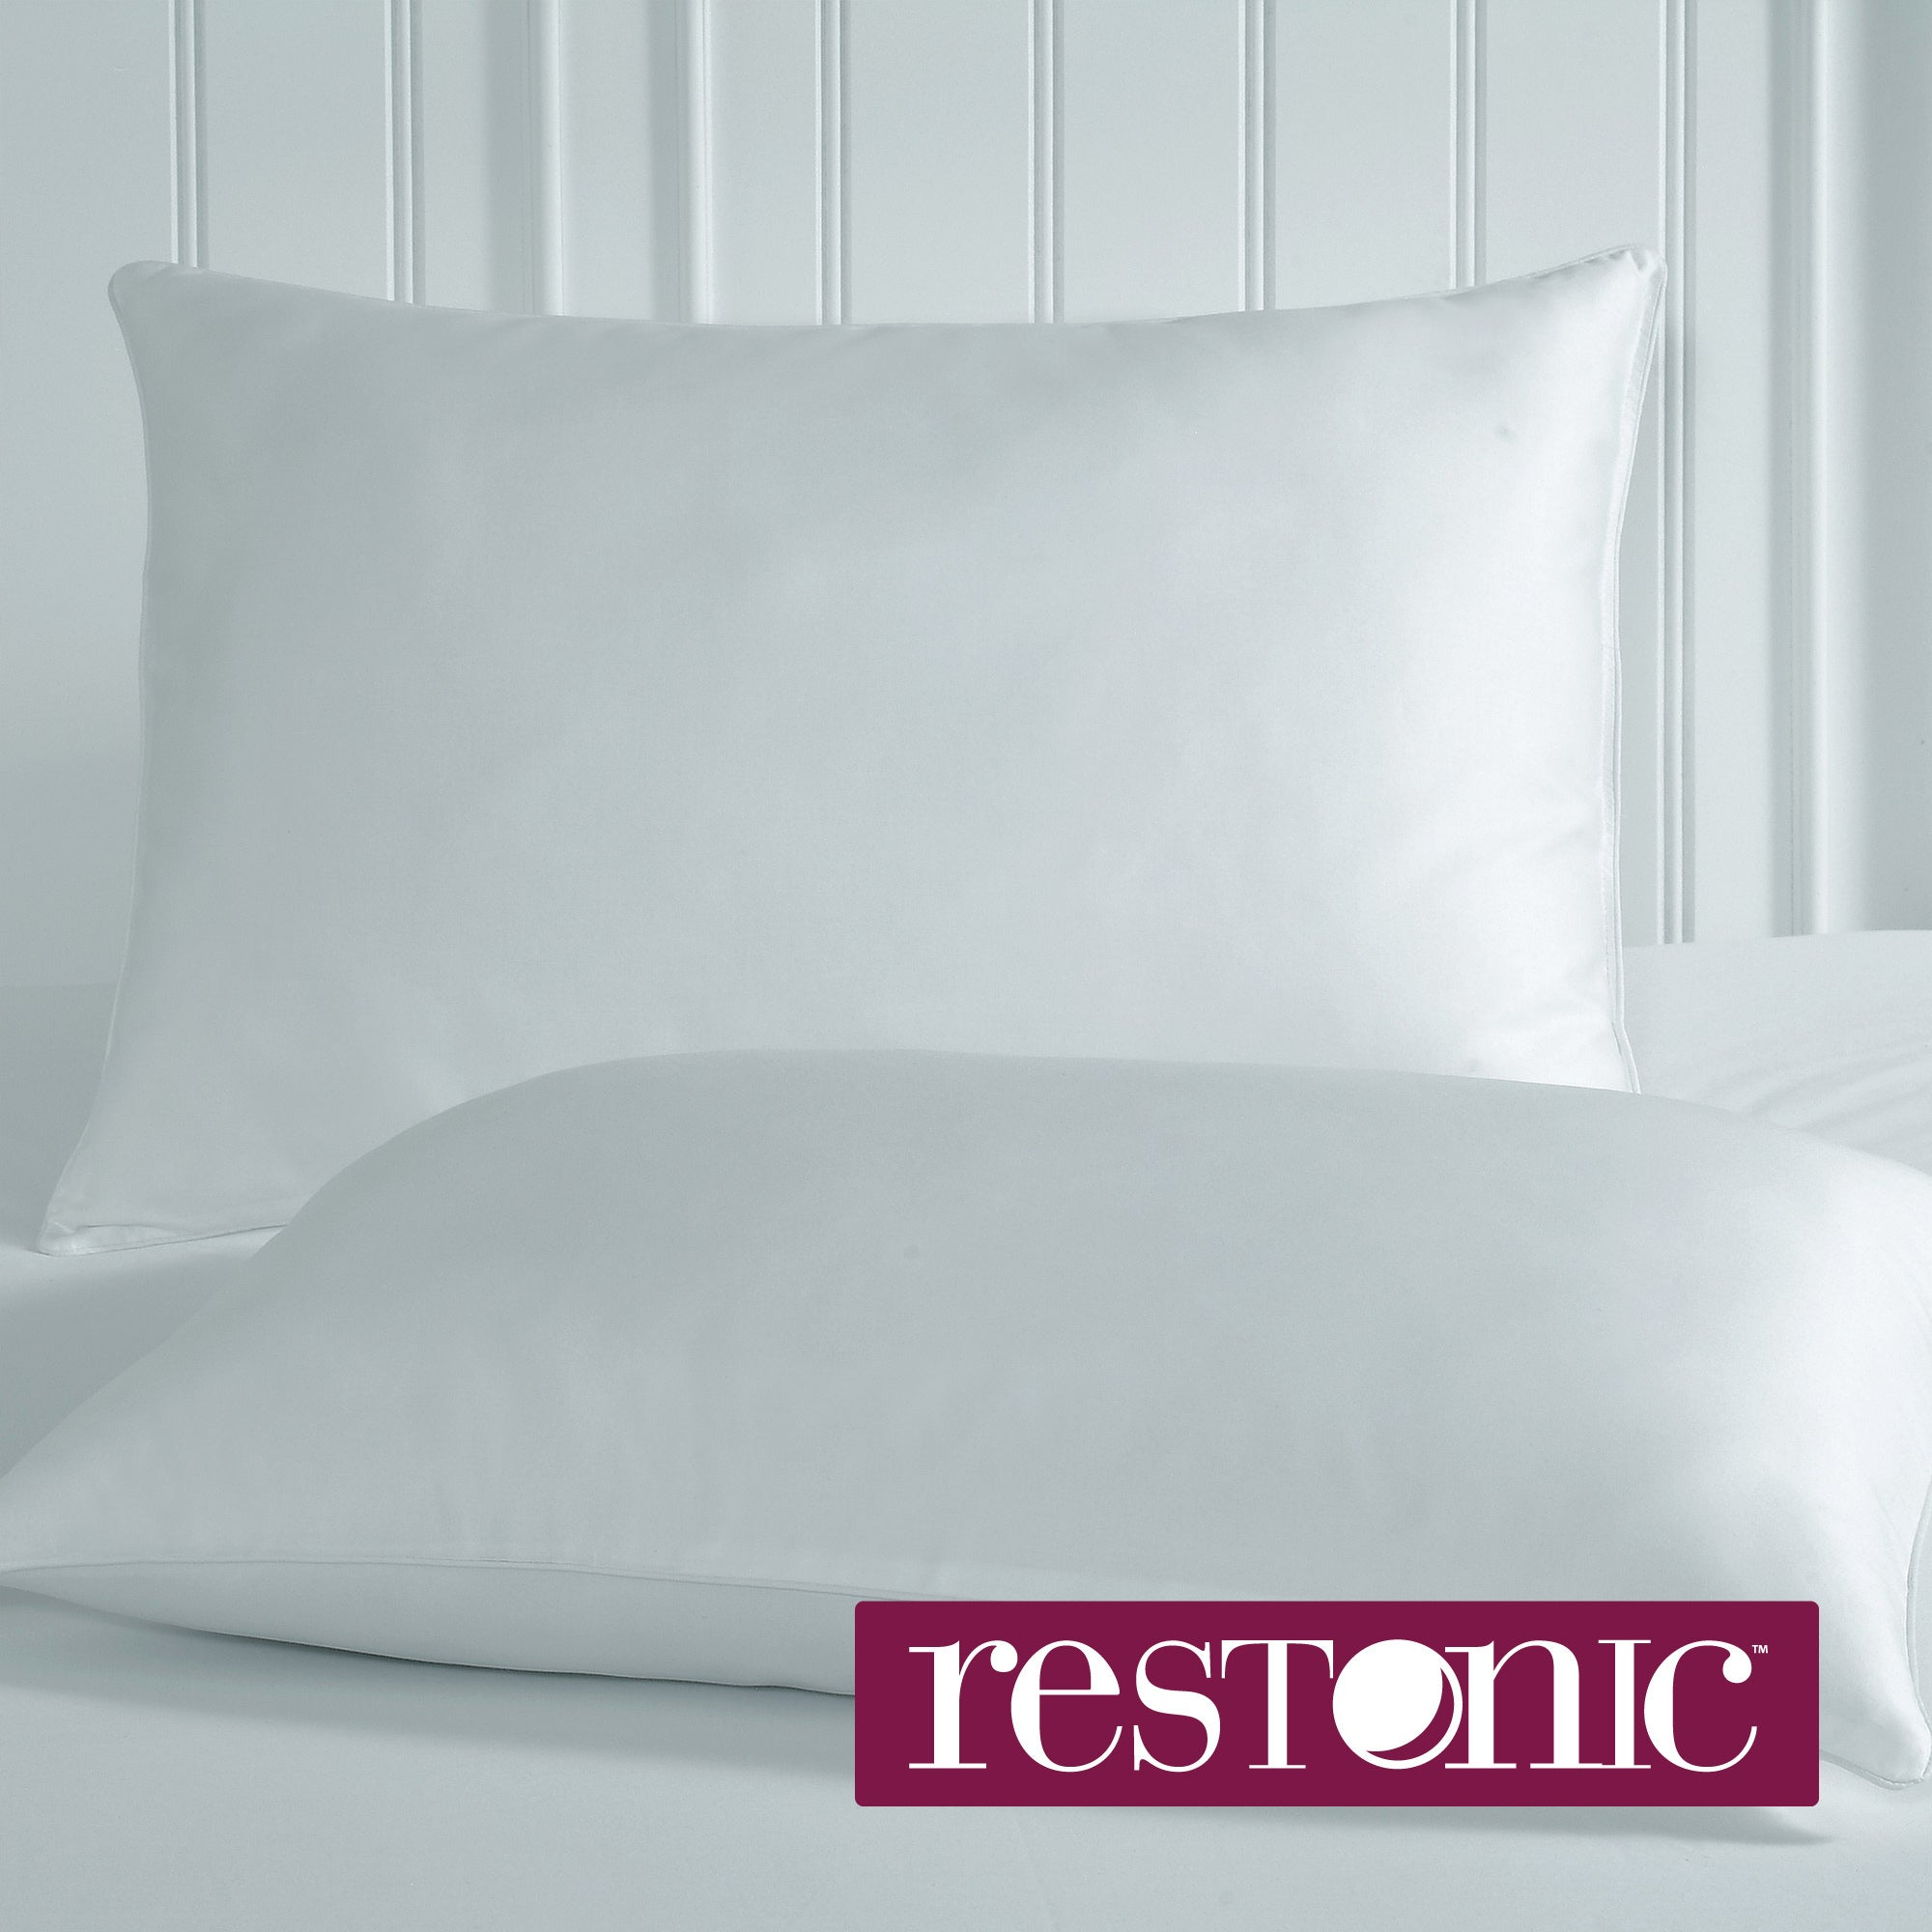 Restonic Luxury Anti-static Spa Pillow Protector (Set of 2) at Sears.com